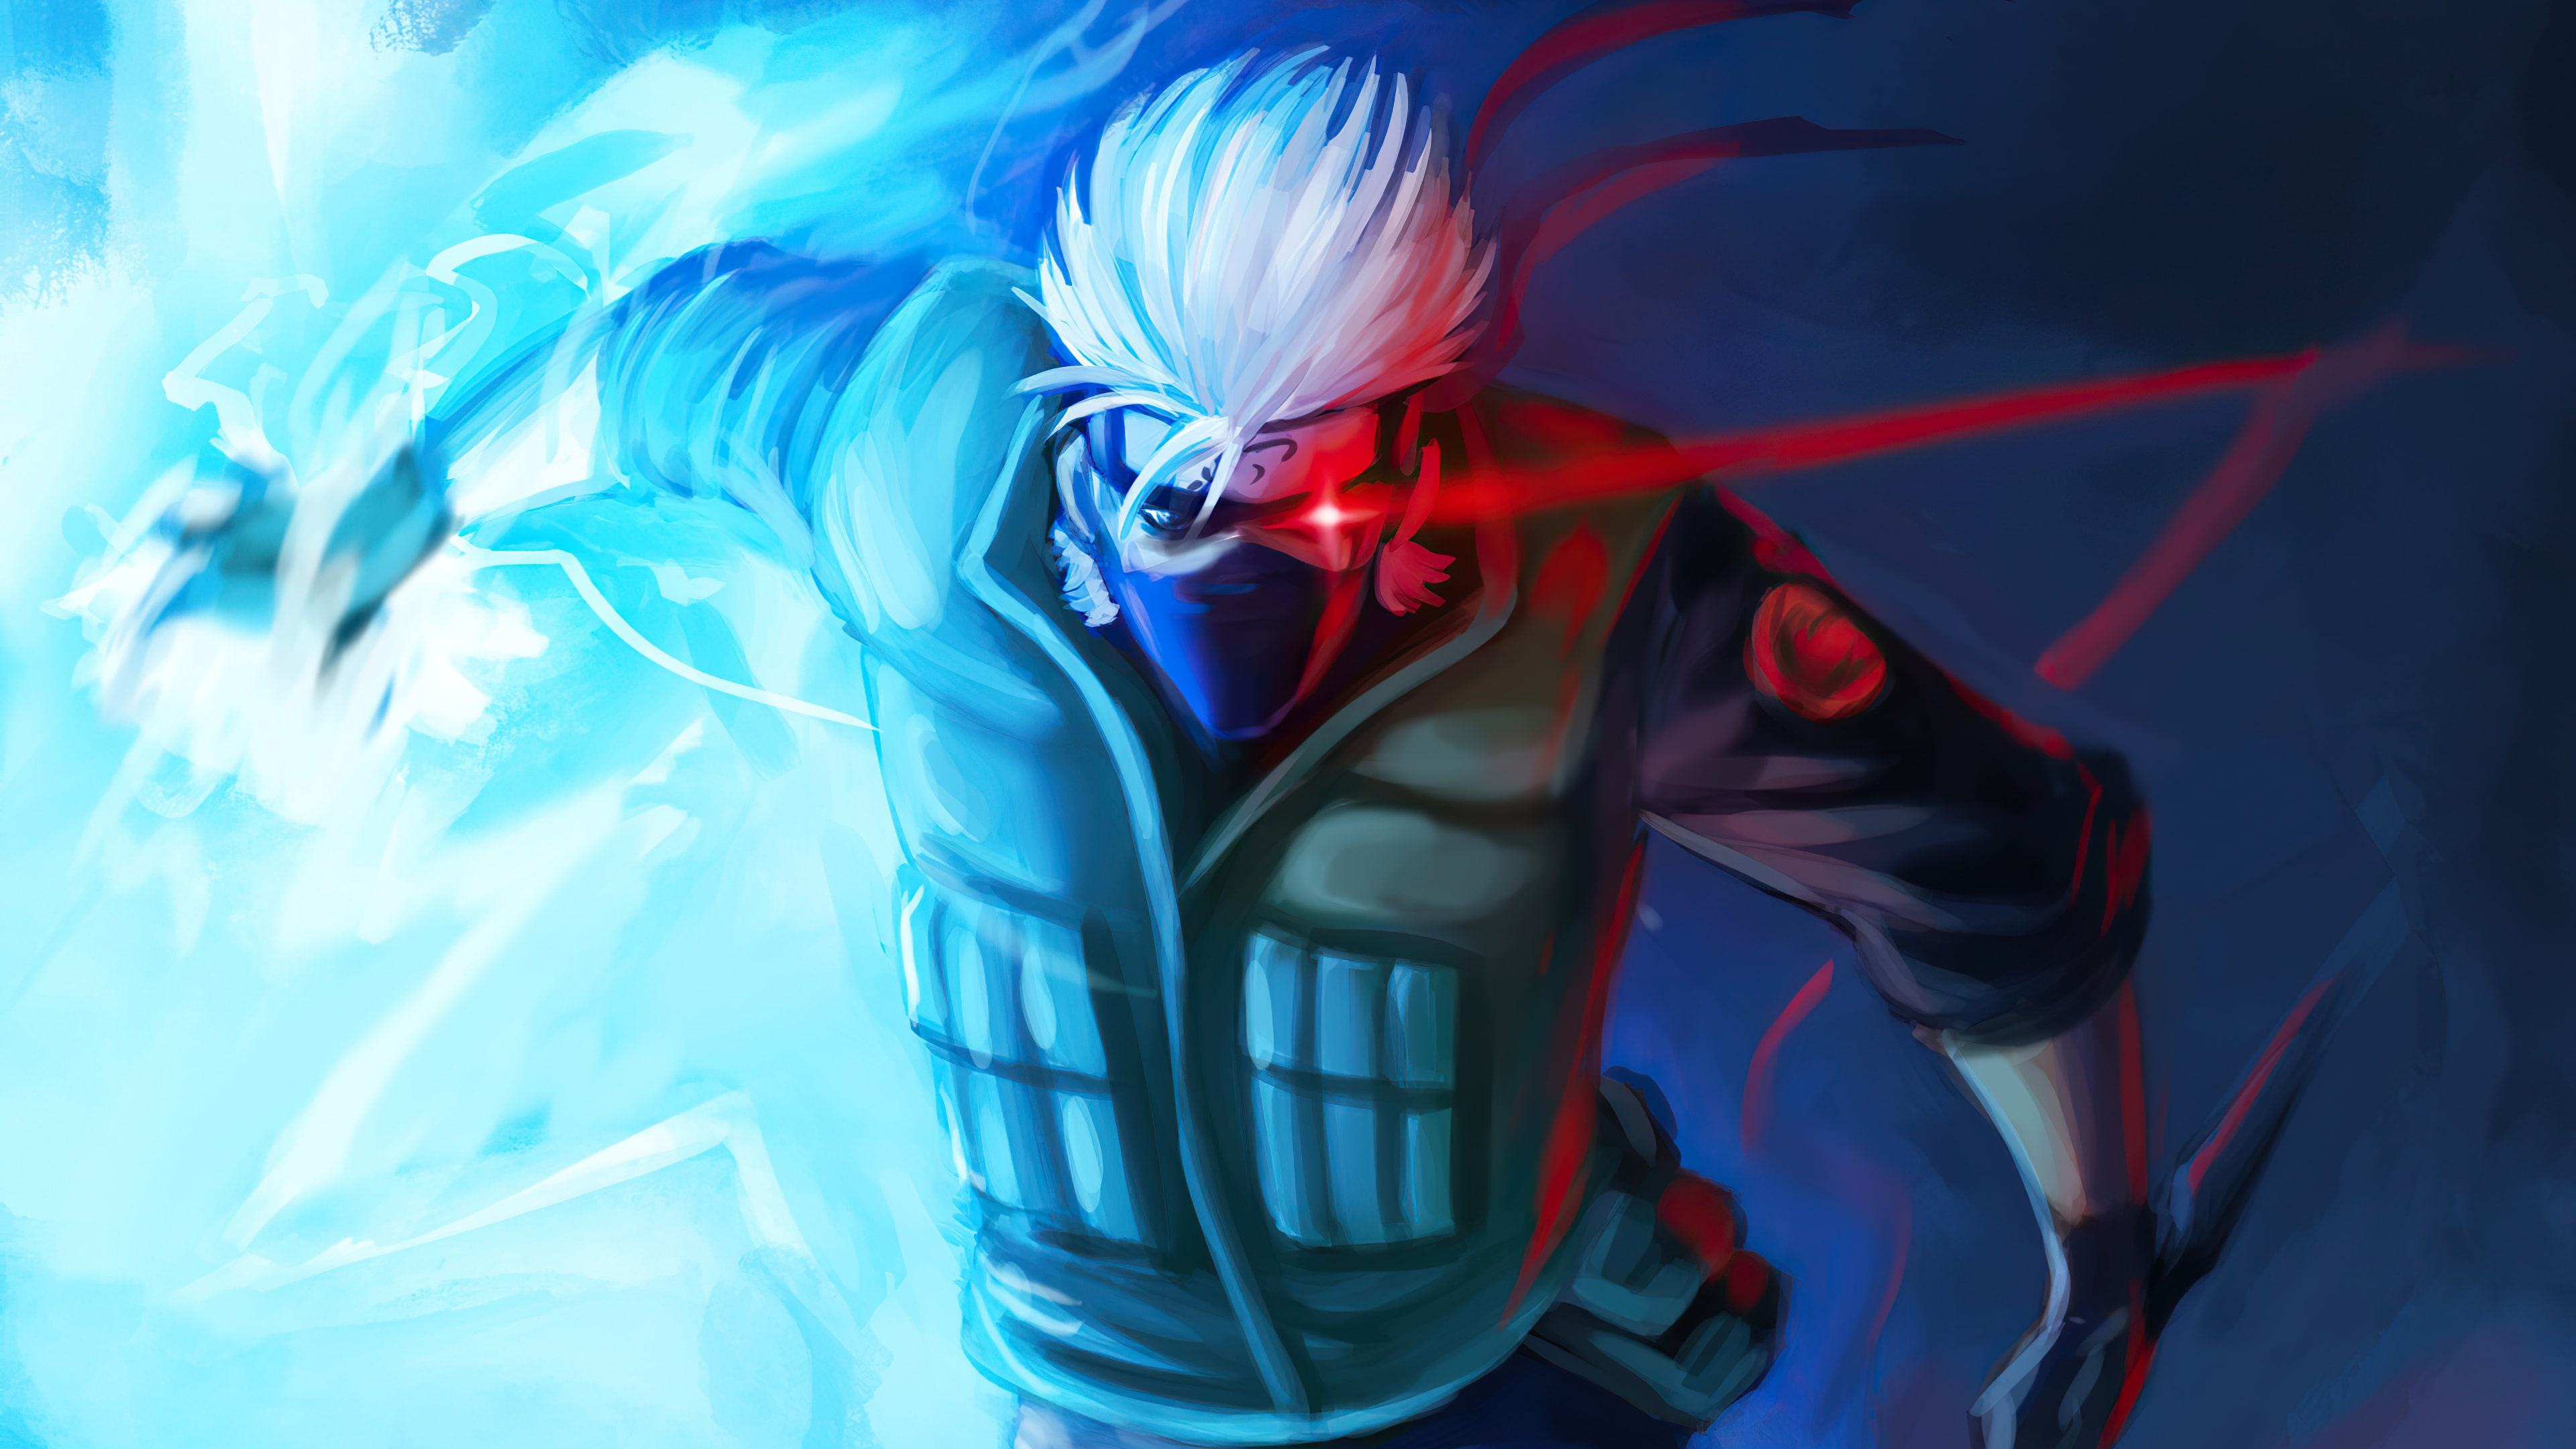 Kakashi 4k Wallpapers Kolpaper Awesome Free Hd Wallpapers